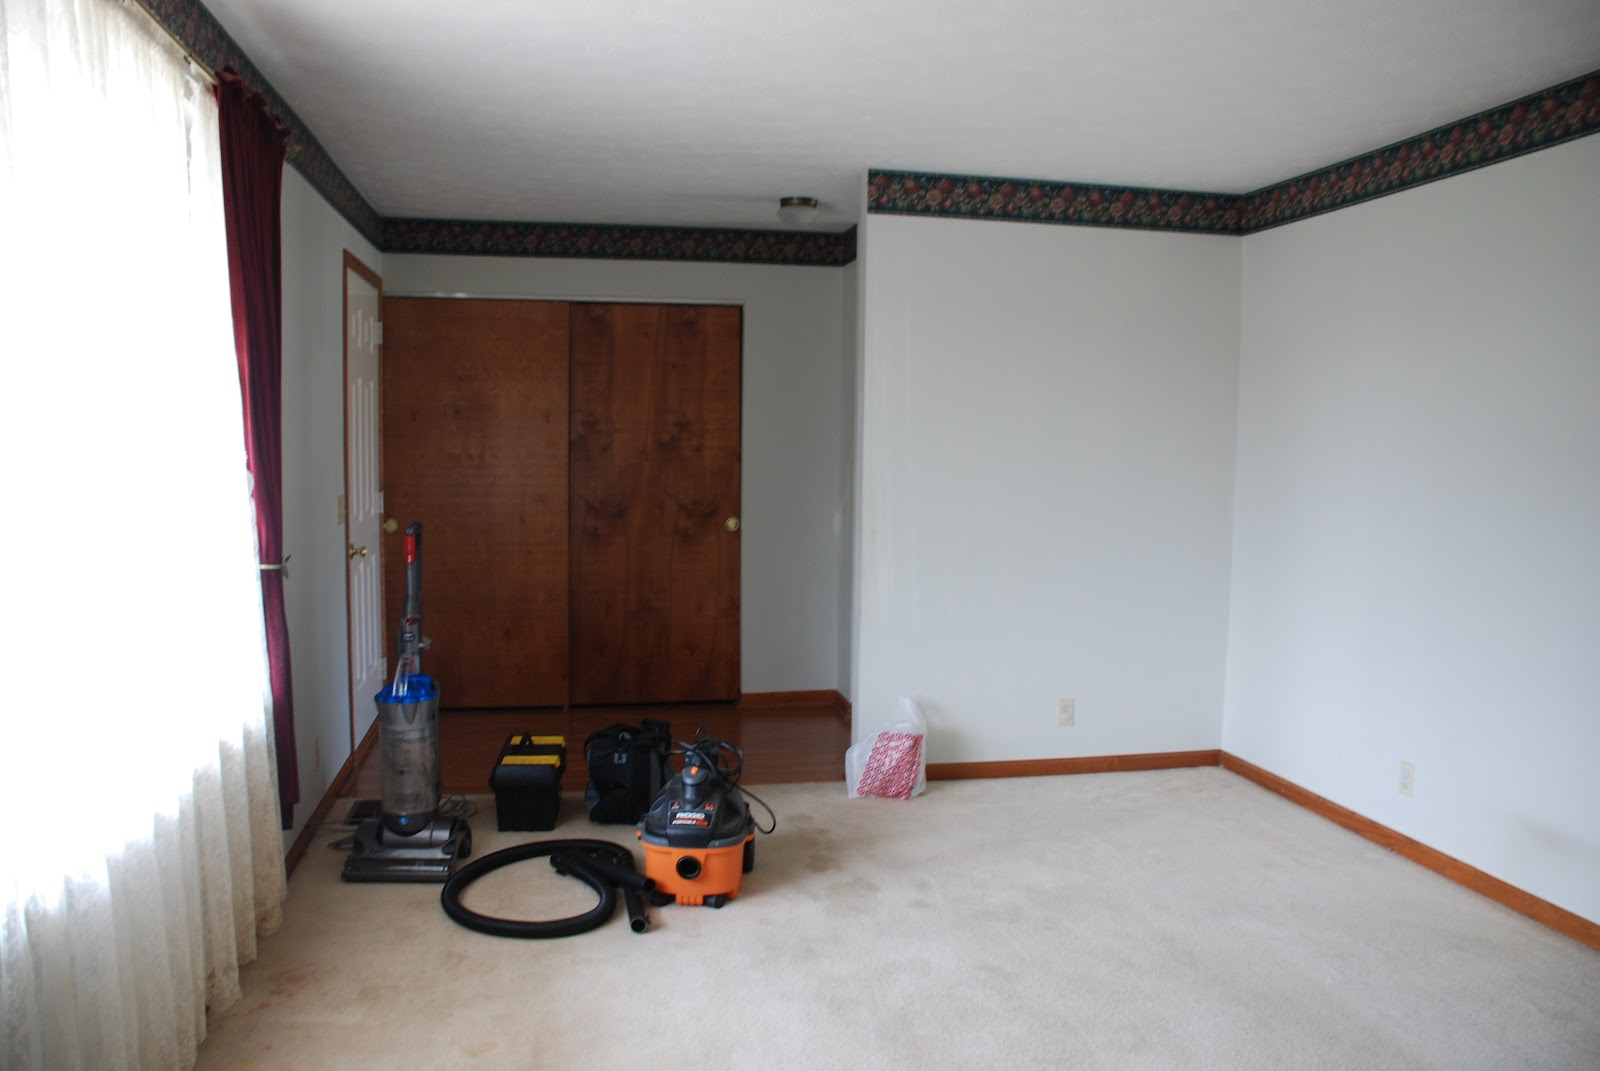 The 12 Year Plan: The William Morris Project: Living Room